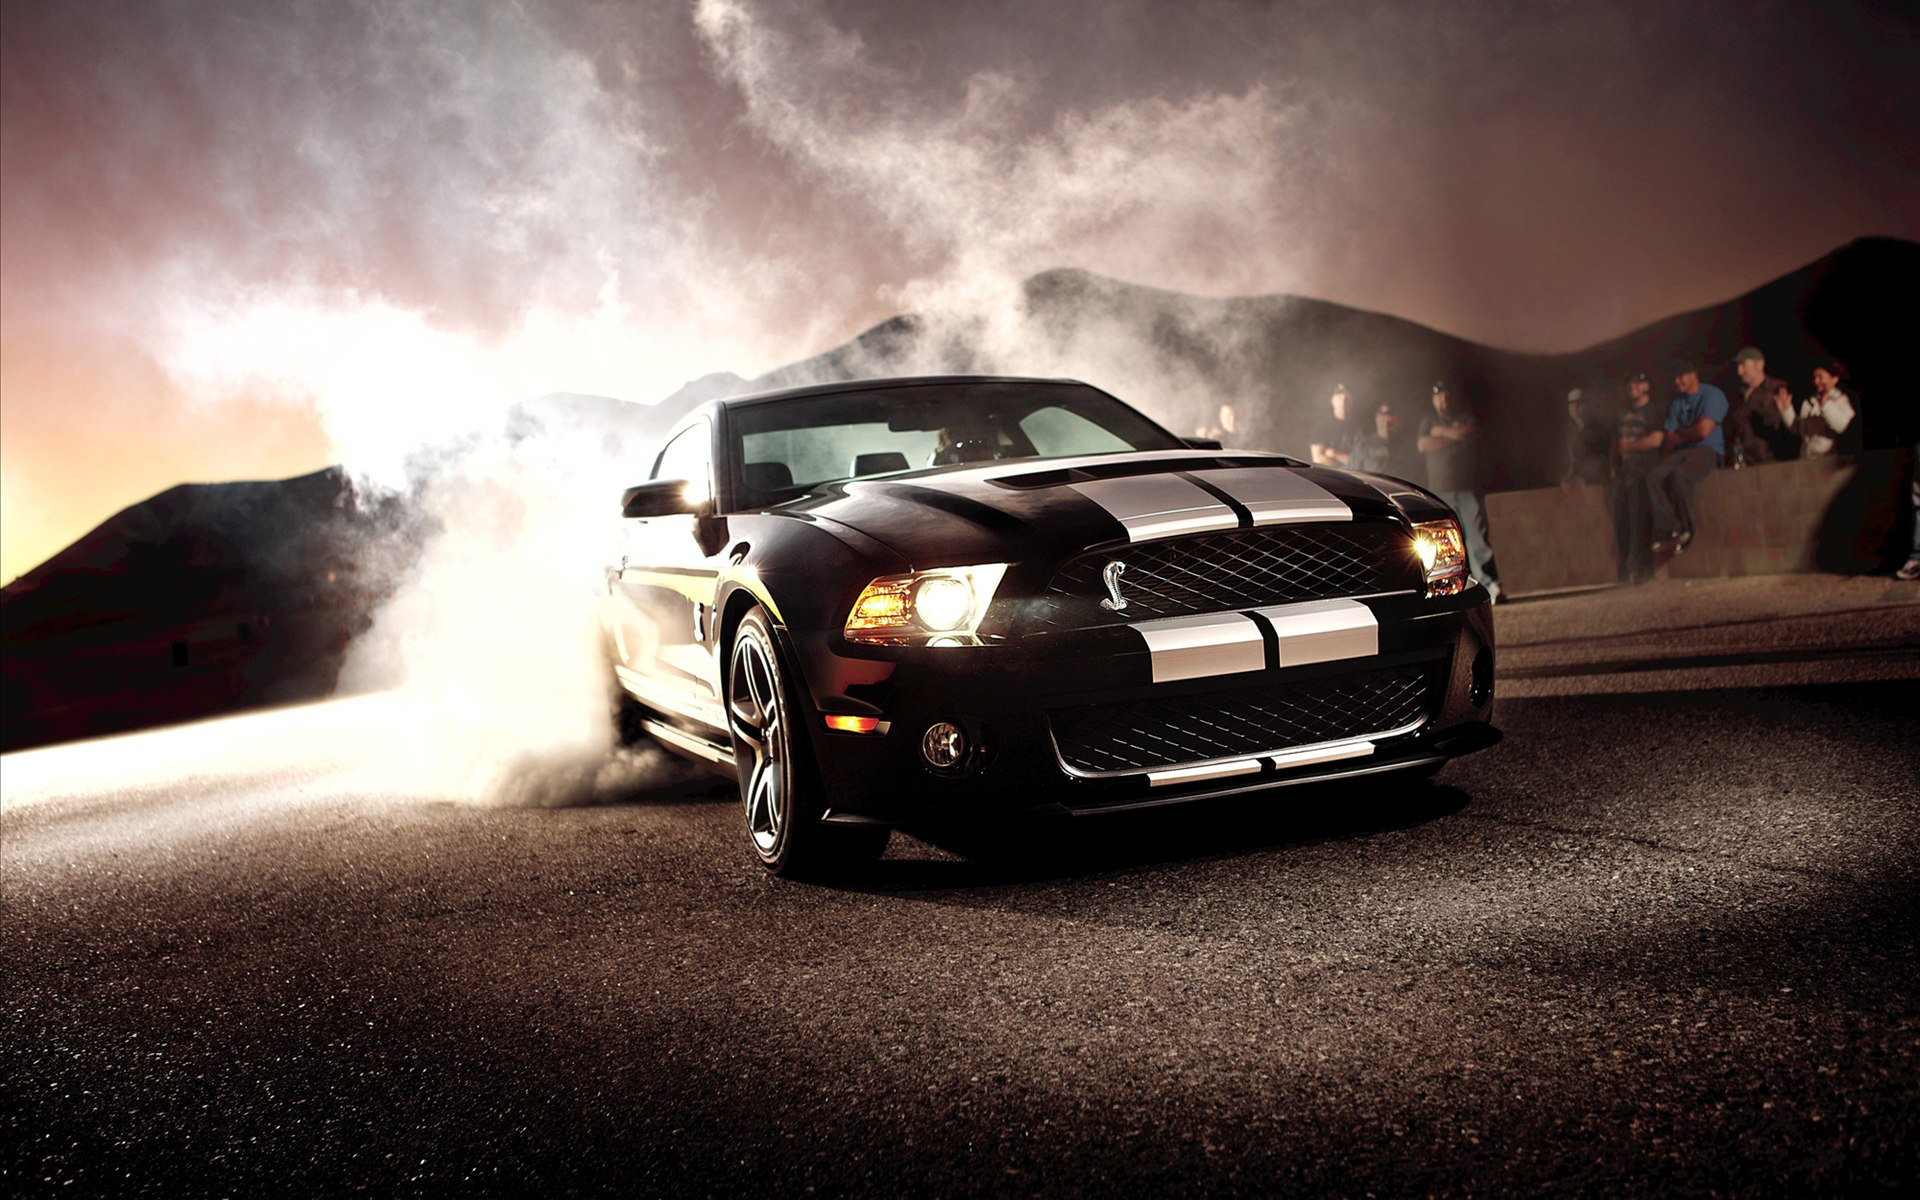 Ford Mustang Wallpaper  Keciwi Mustangs wallpapers Group  1920x1200